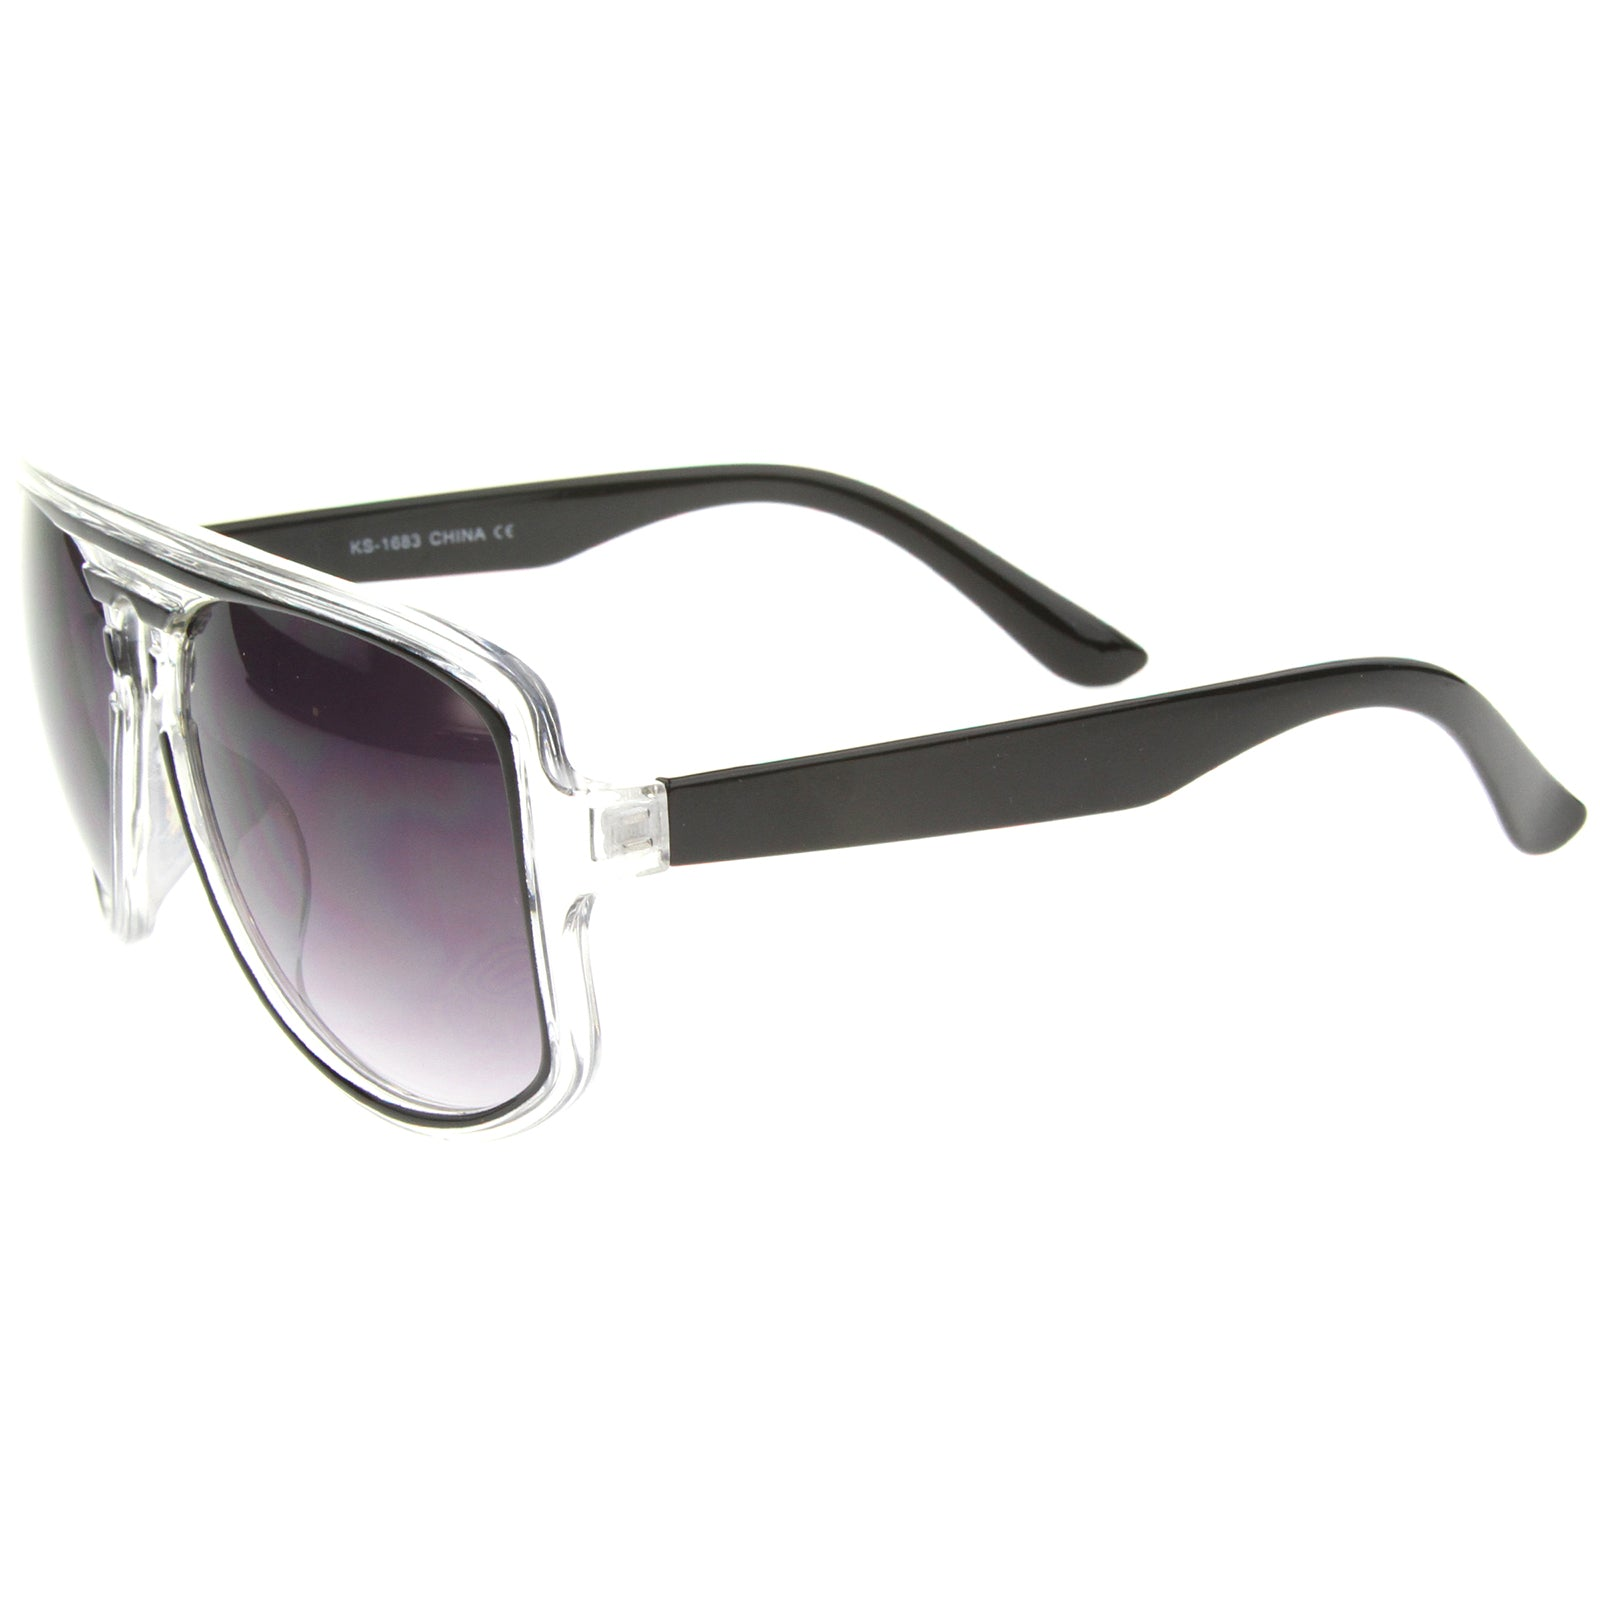 Aviator Sunglasses With UV400 Protected Gradient Lens - sunglass.la